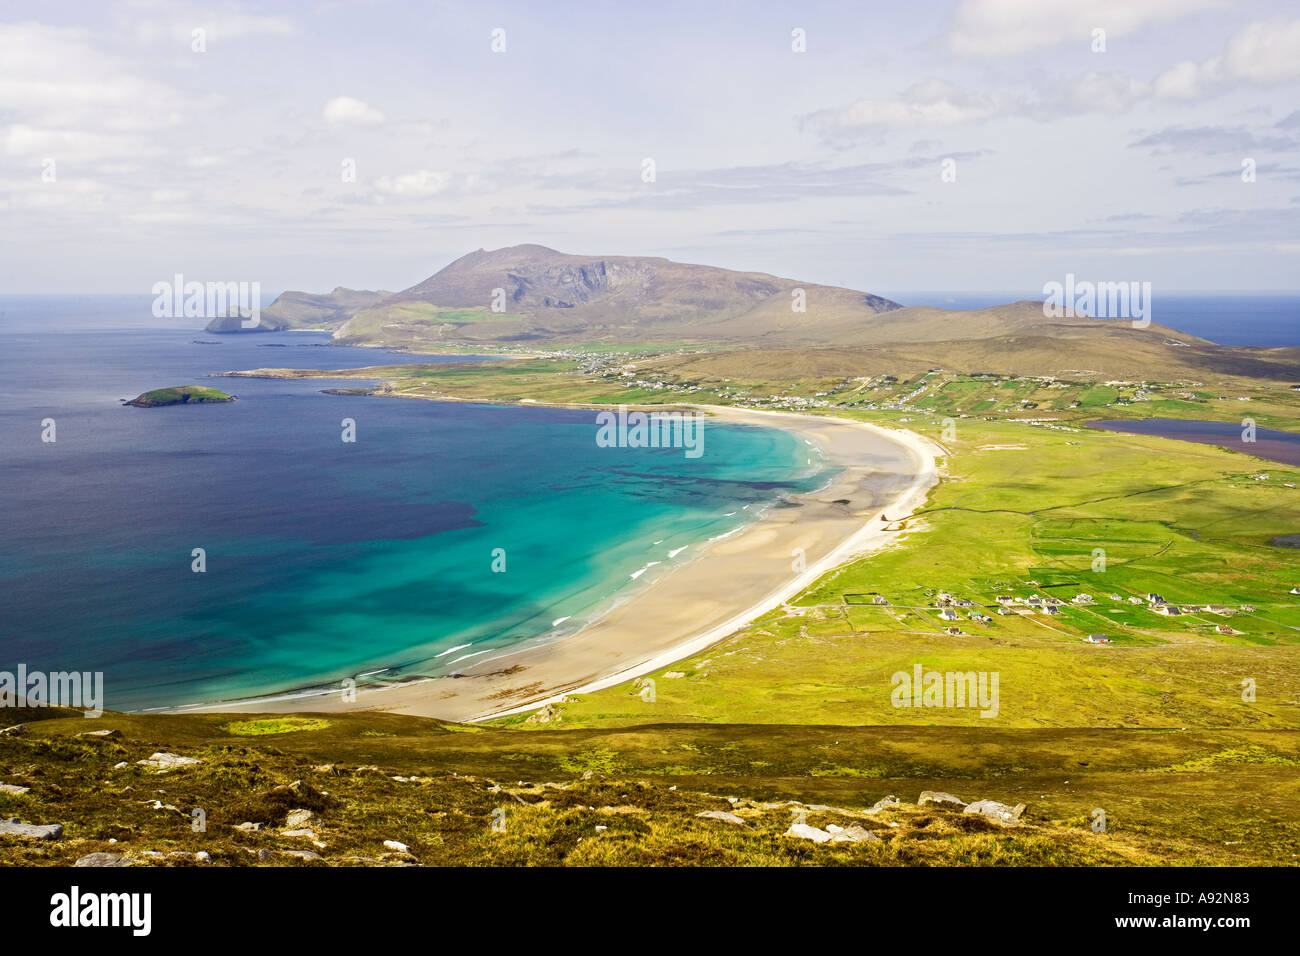 Keel Beach Viewed from Moytage head Achill Island County Mayo Eire - Stock Image